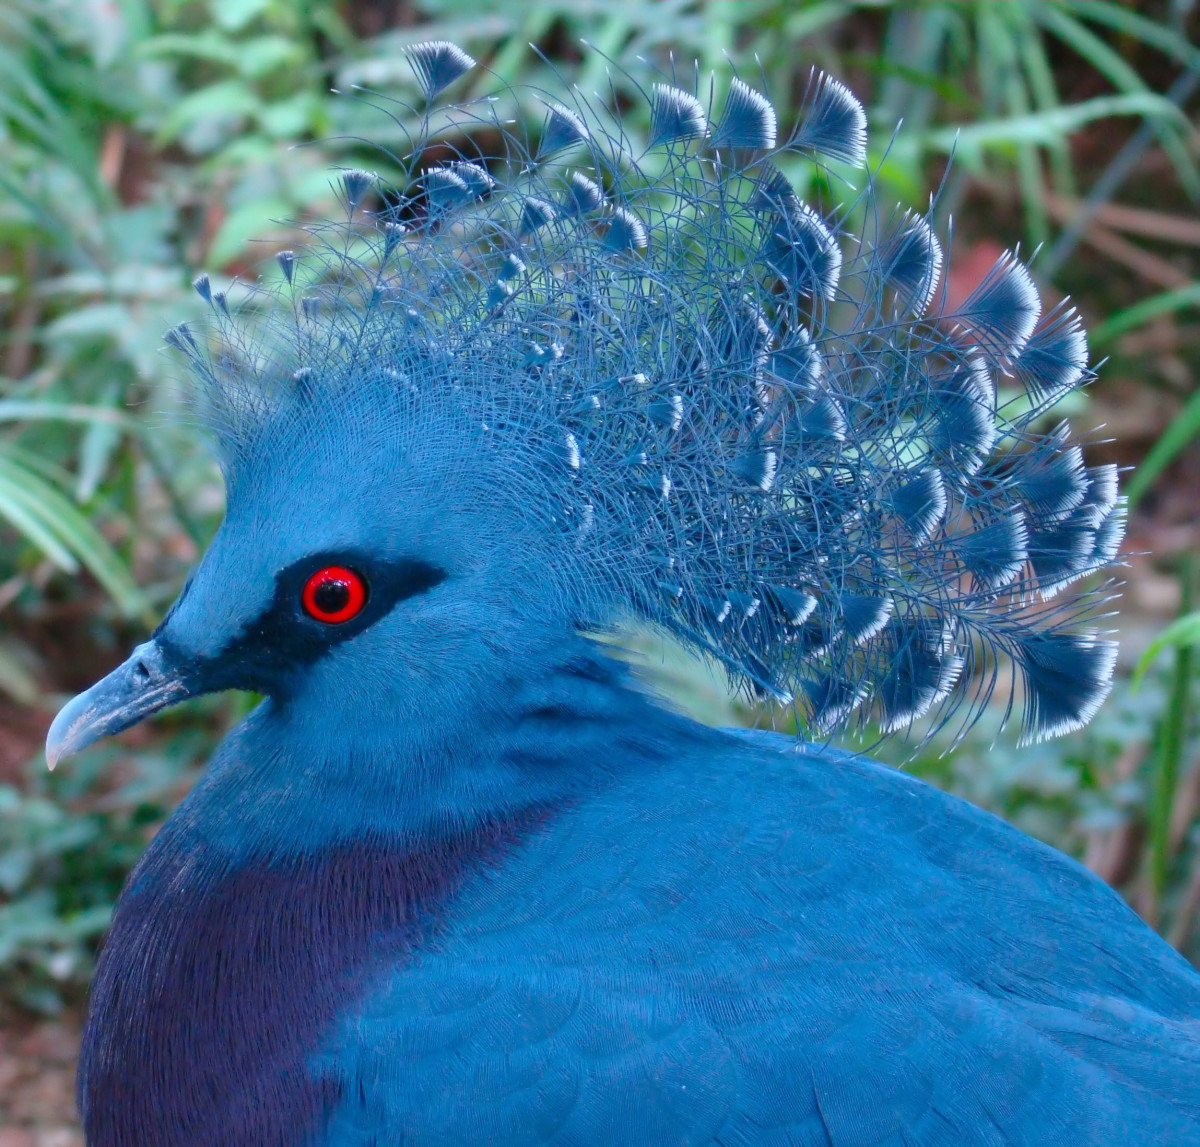 The Victoria crowned pigeon's bright blue feathers and tiara-like crest render it far more regal than its city-dwelling cousin, the rock dove.